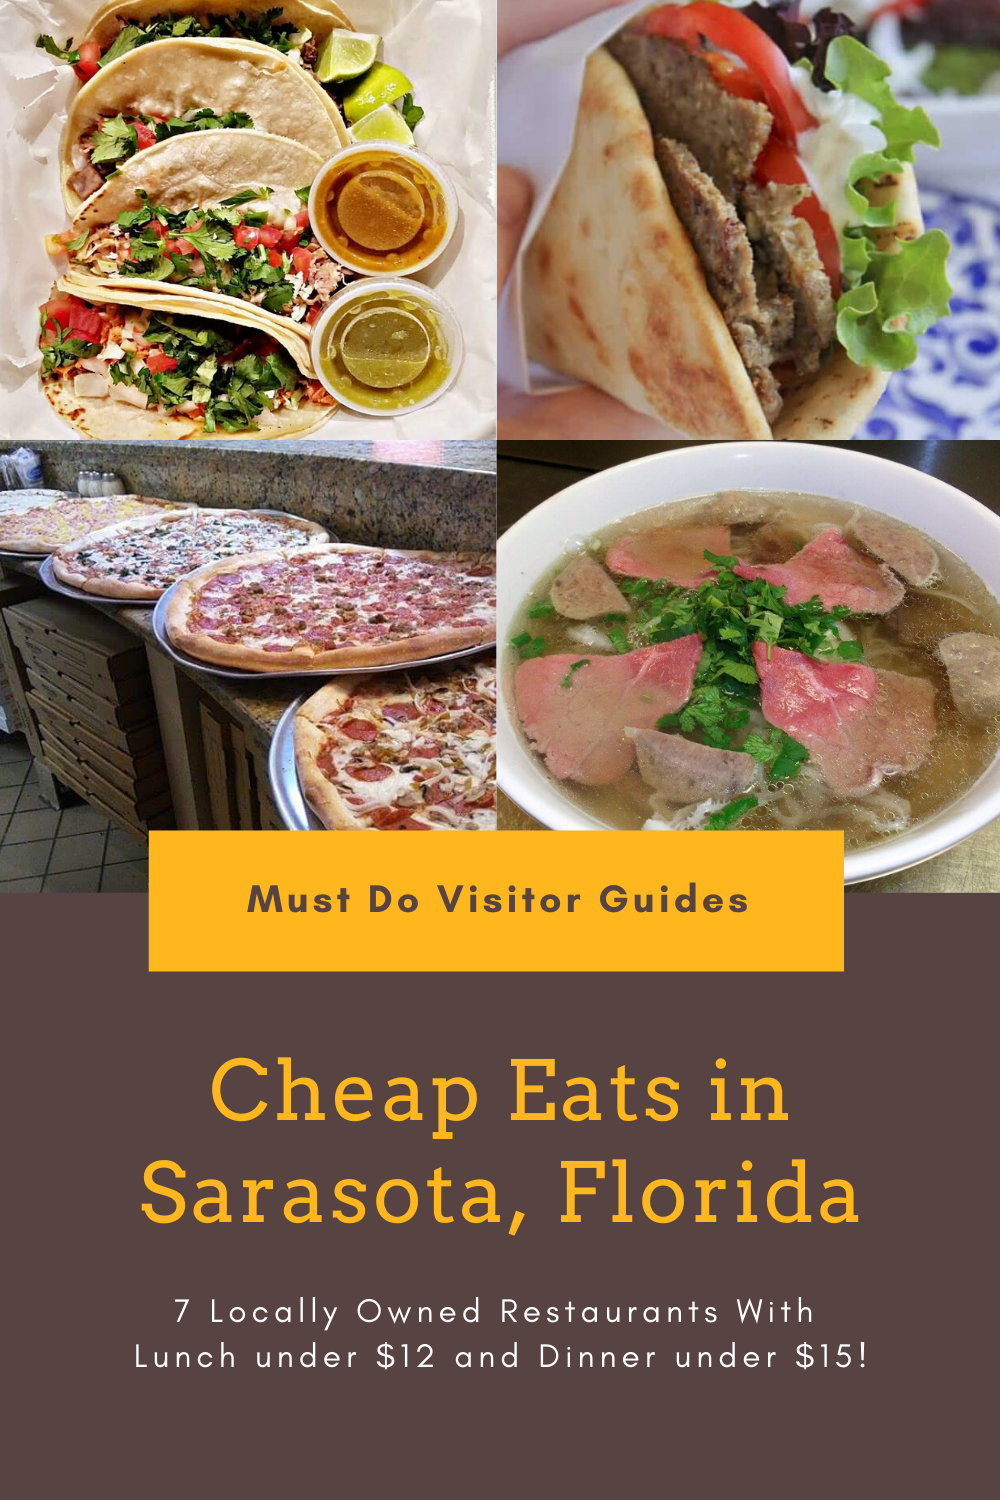 Cheap Eats in Sarasota, Florida. 7 Locally Owned Restaurants With Lunch under $12 and Dinner under $15! Must Do Visitor Guides | MustDo.com